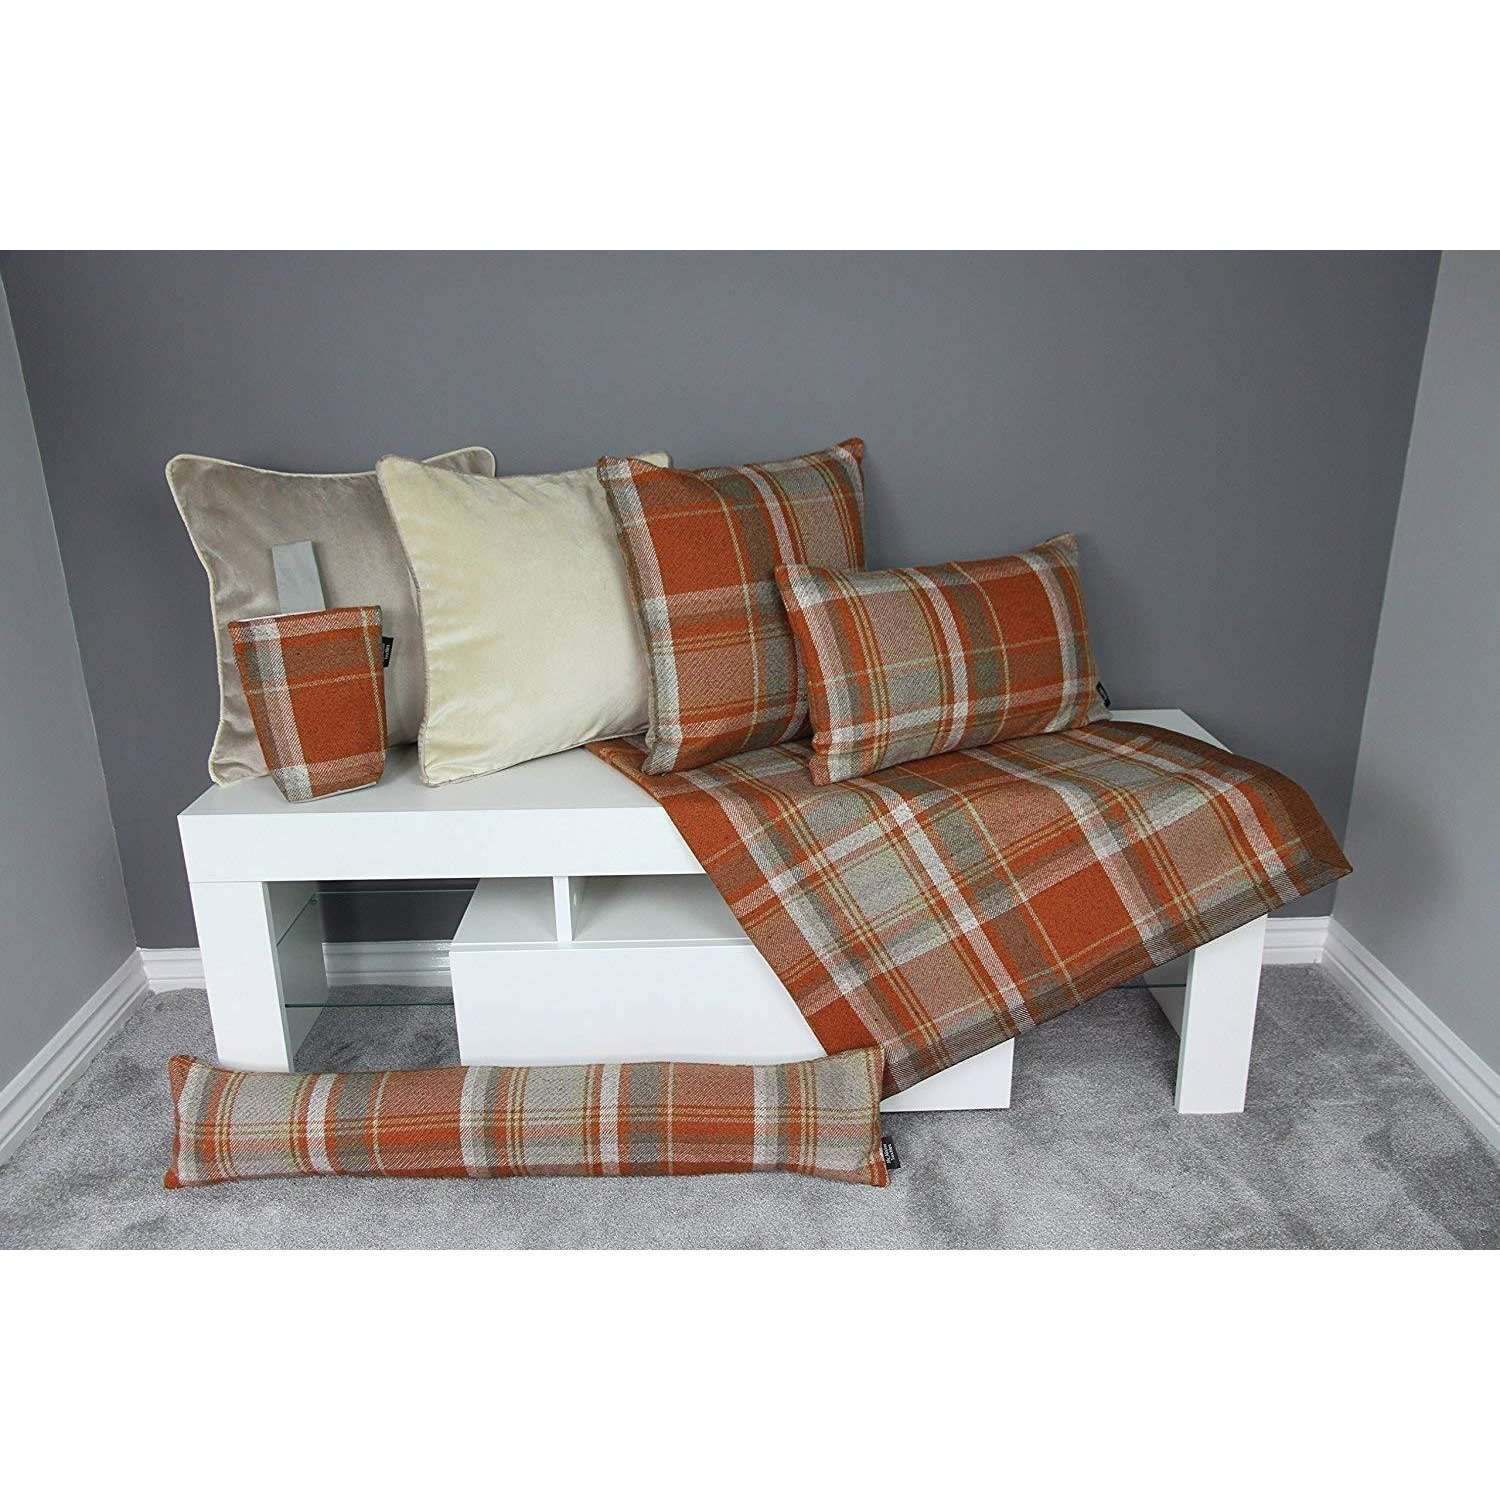 McAlister Textiles Heritage Burnt Orange + Grey Tartan Bedding Set Bedding Set